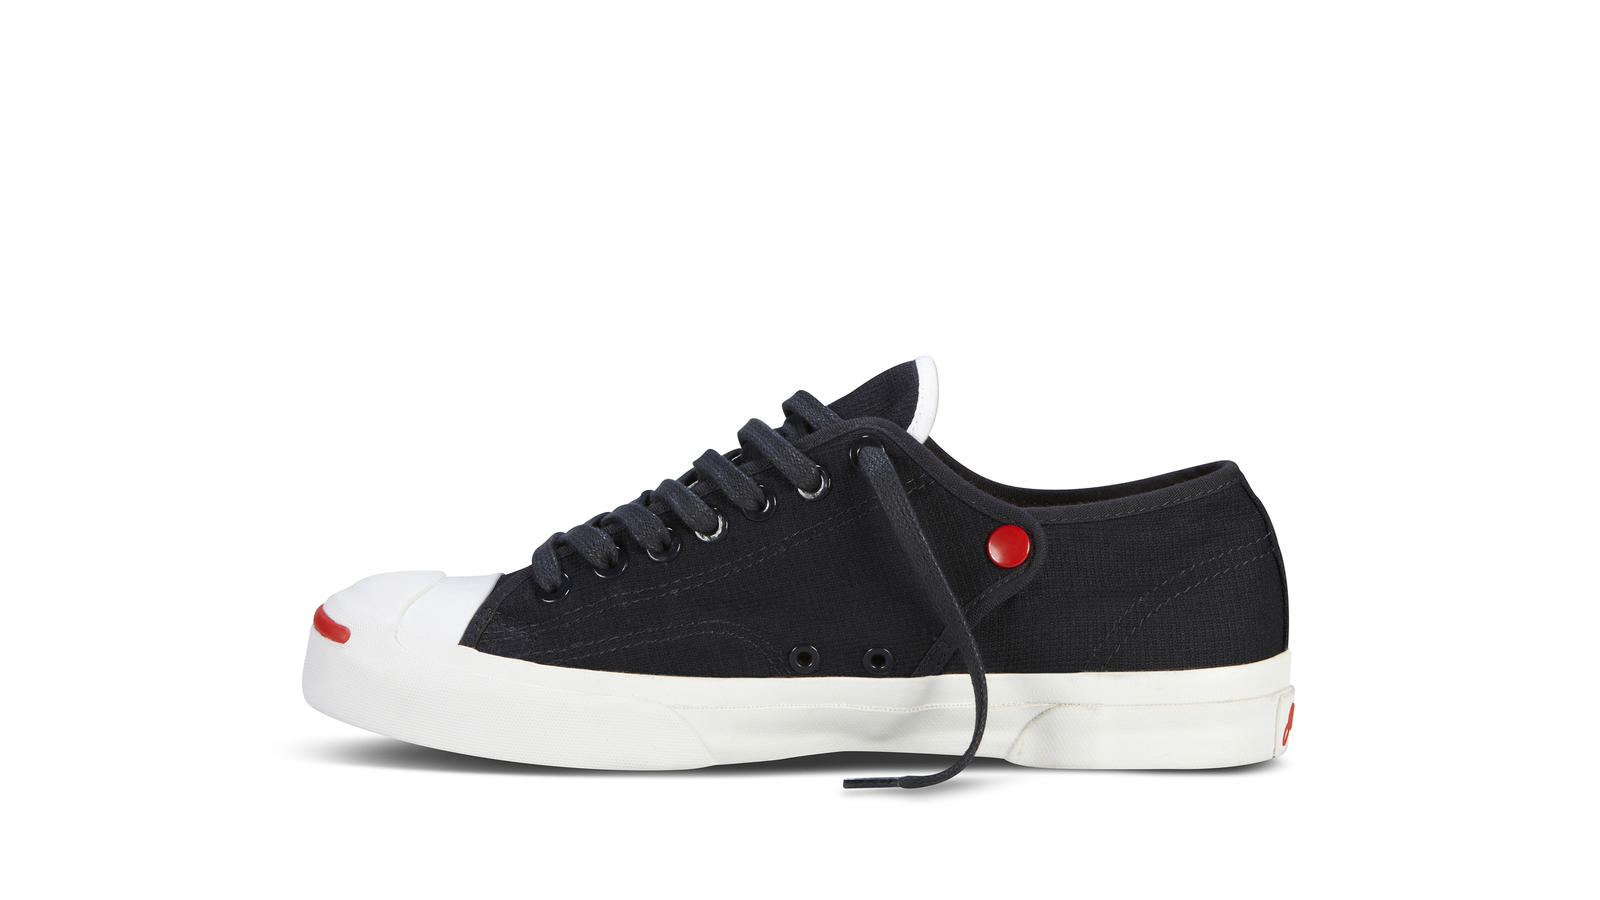 Converse Slam Jam Jack Purcell Medial Original